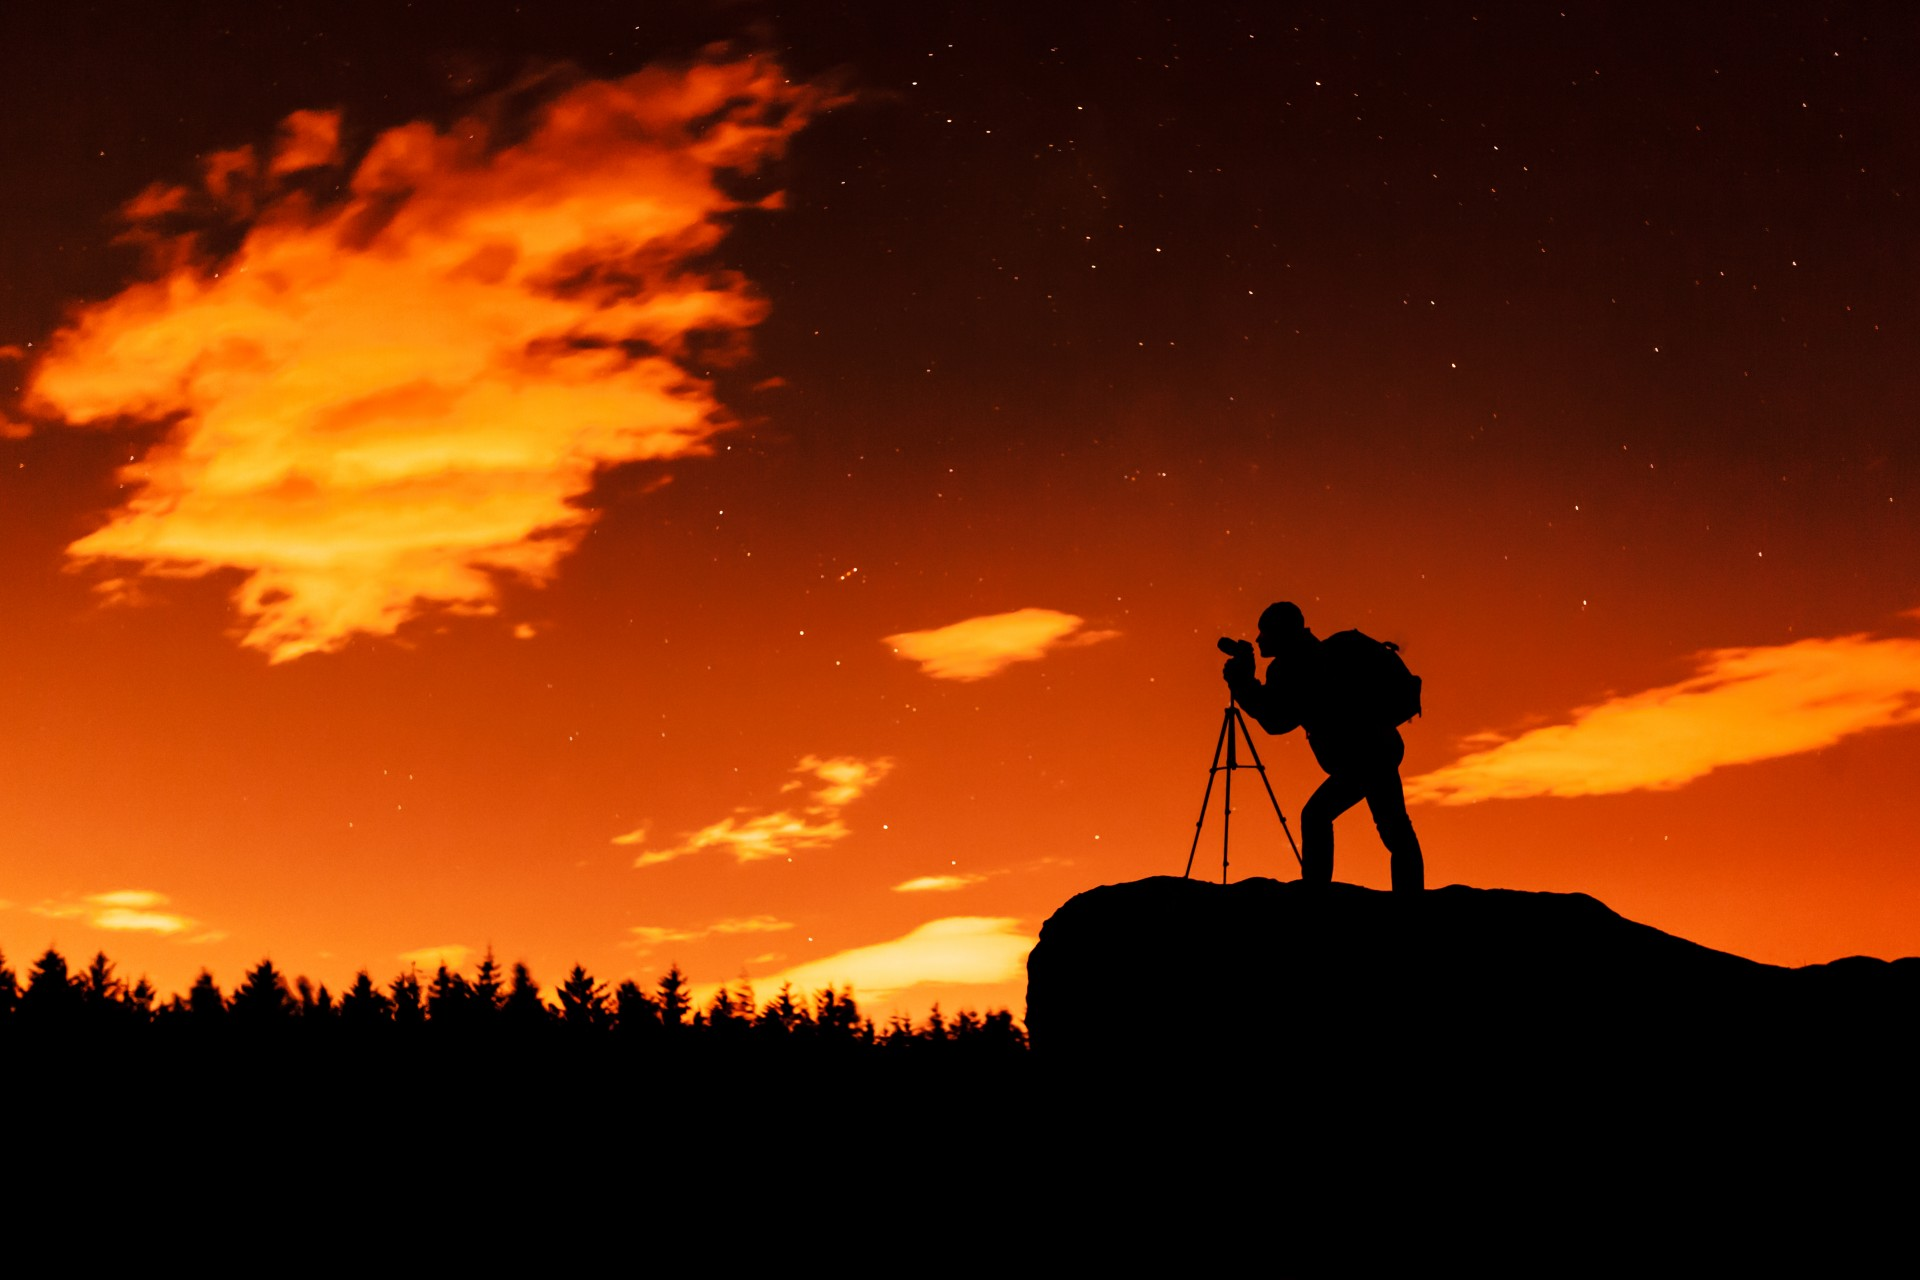 photographer-silhouette-at-night-1377179572fWP